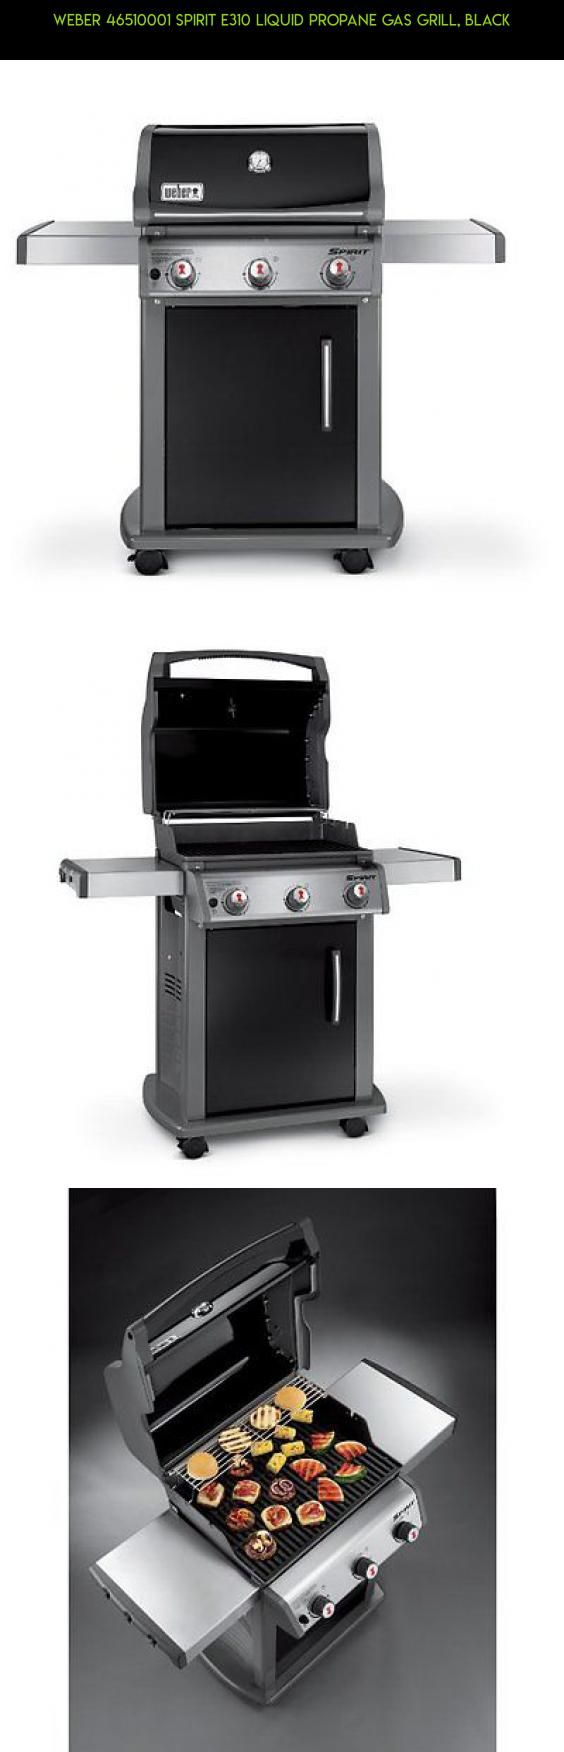 Weber 46510001 Spirit E310 Liquid Propane Gas Grill, Black #technology #products #gas #racing #camera #shopping #plans #grills #kit #parts #gadgets #fpv #drone #tech #weber